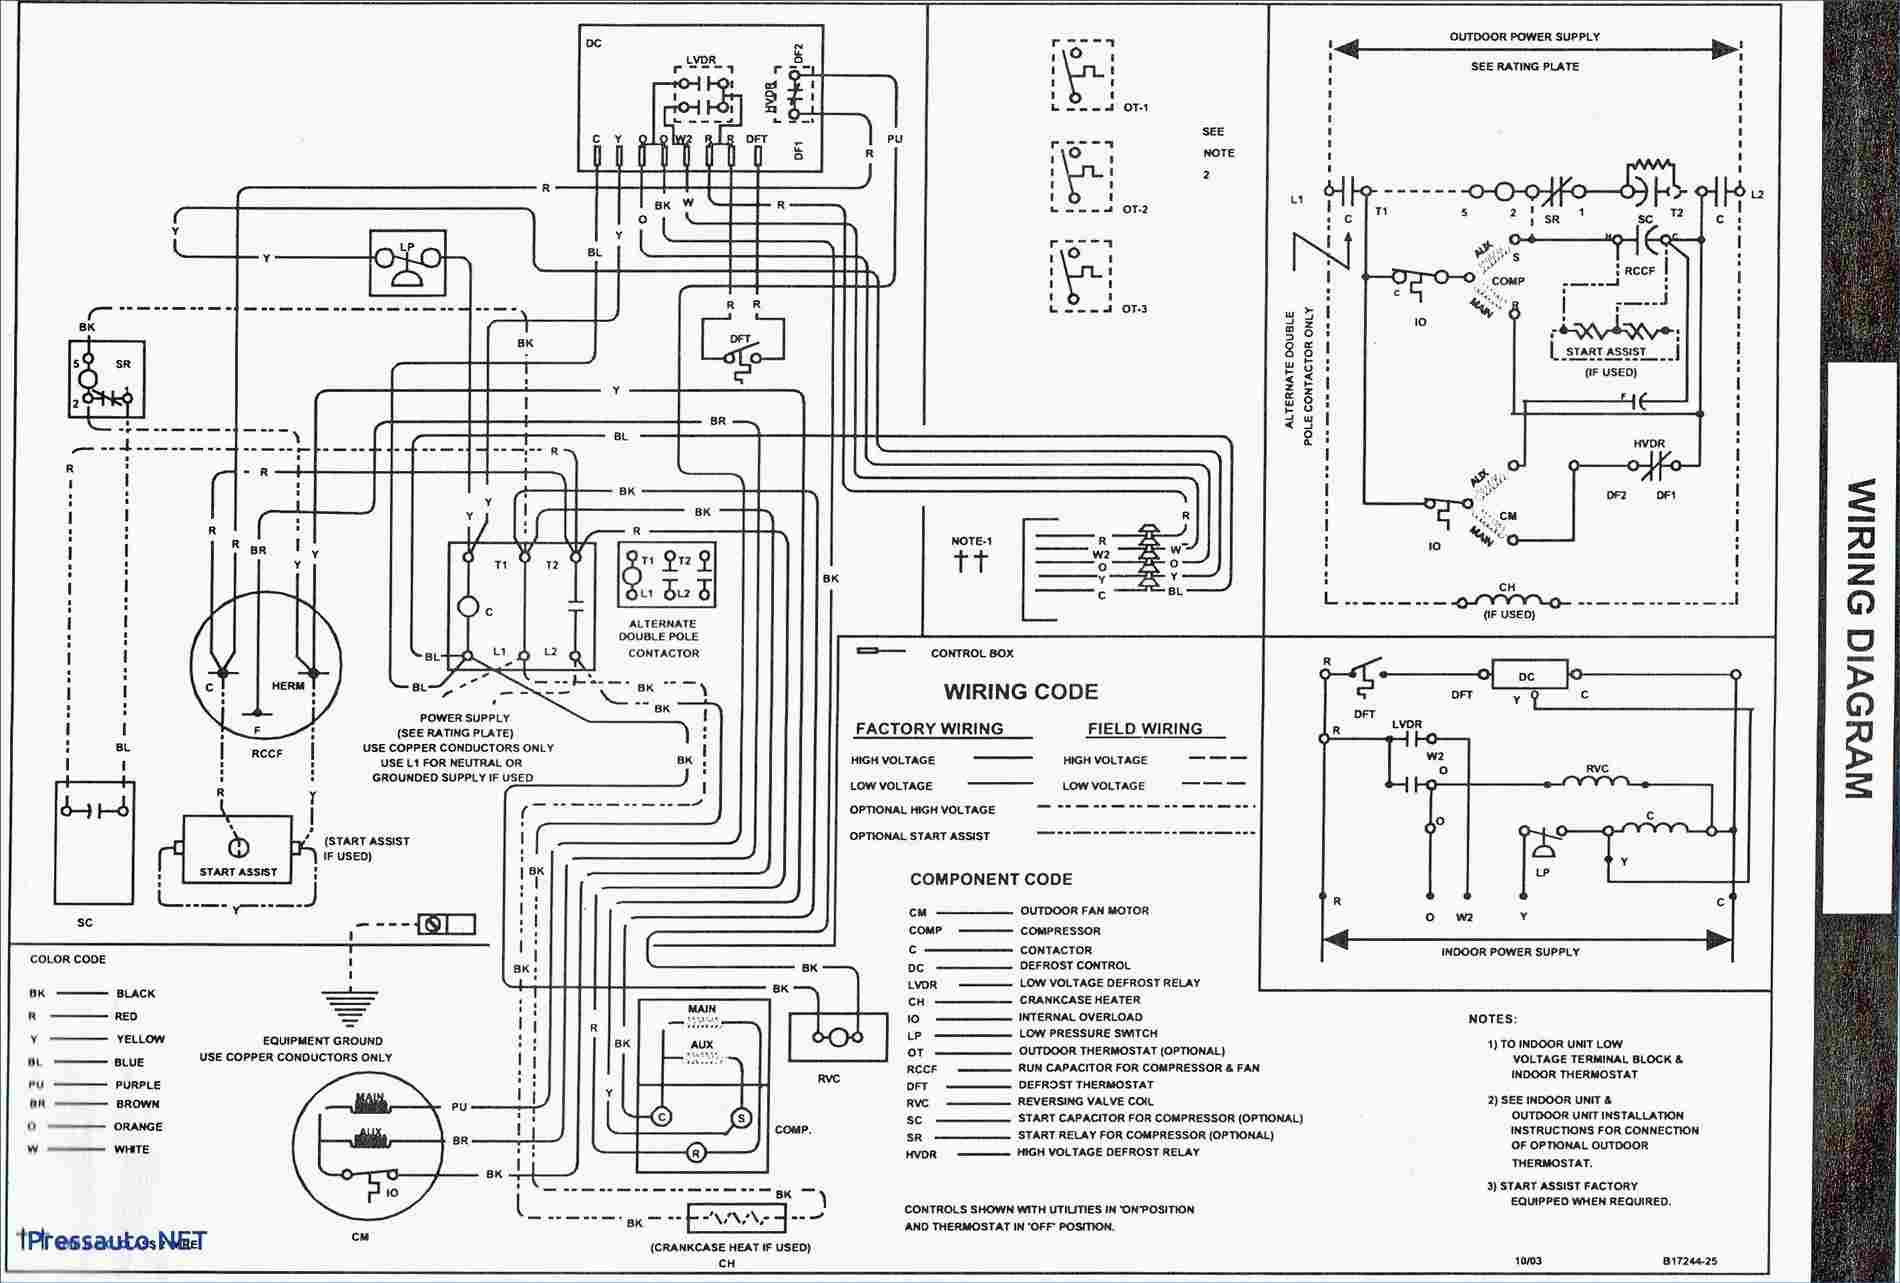 Schematic Of Bryant Gas Furnace Wiring Diagram Data